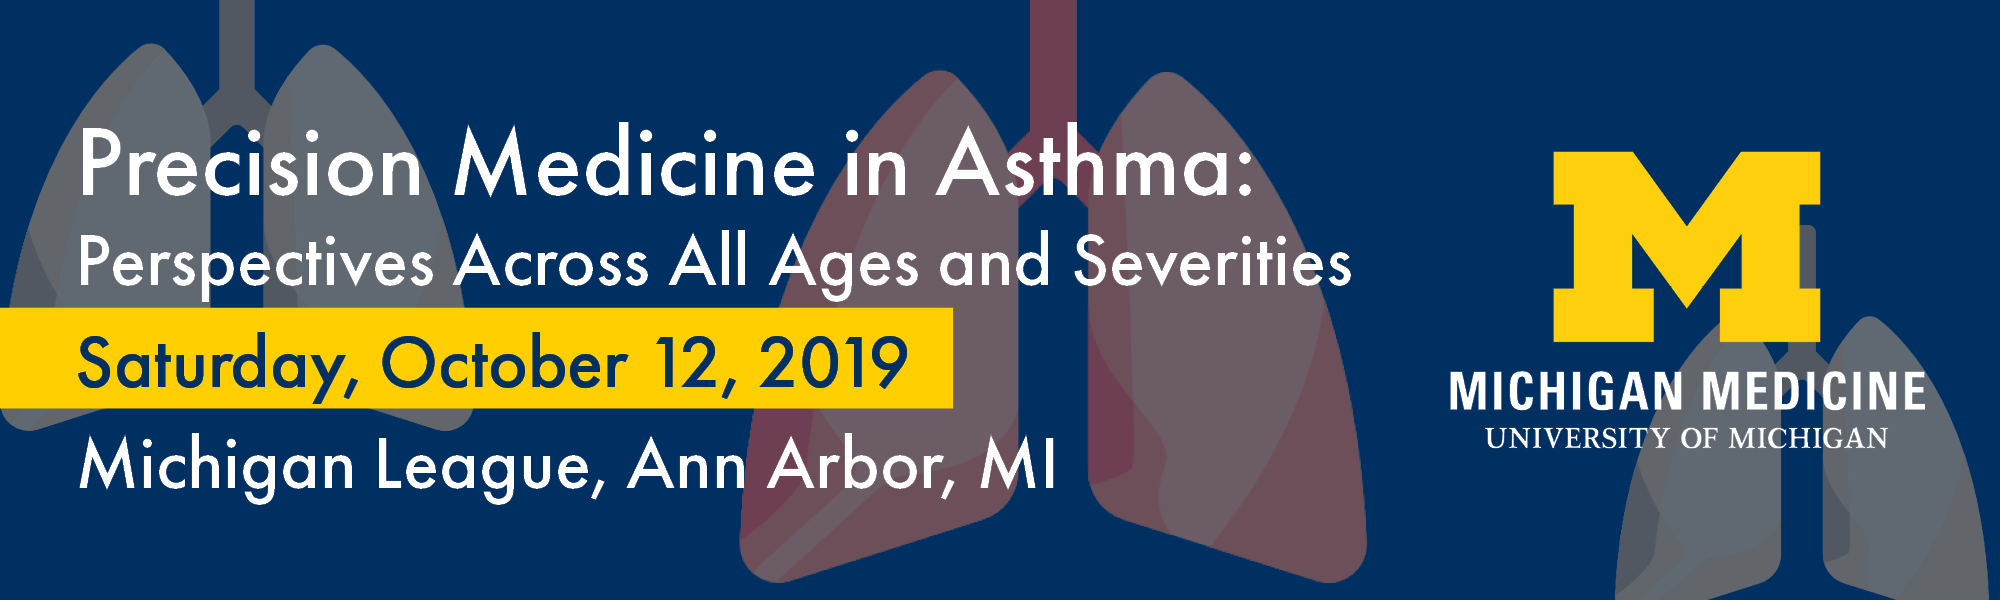 Precision Medicine in Asthma: Perspectives Across all Ages and Severities